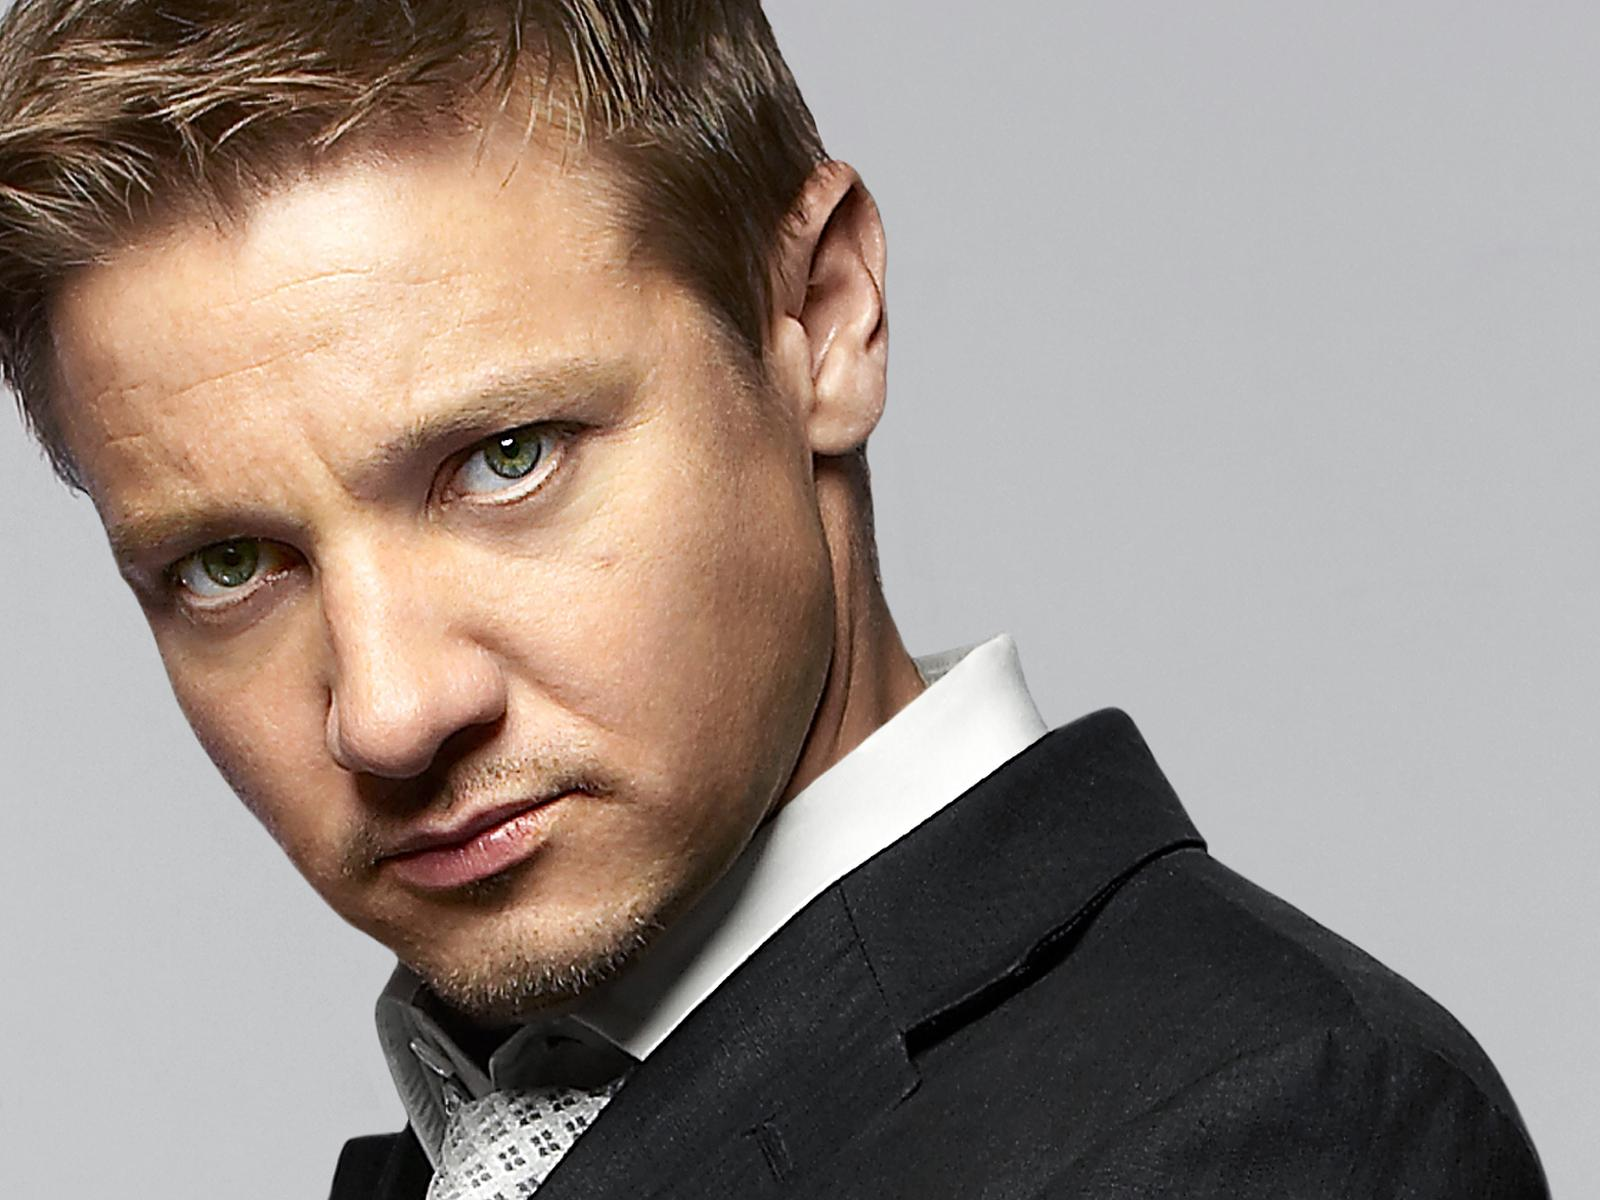 jeremy-renner-wallpaper